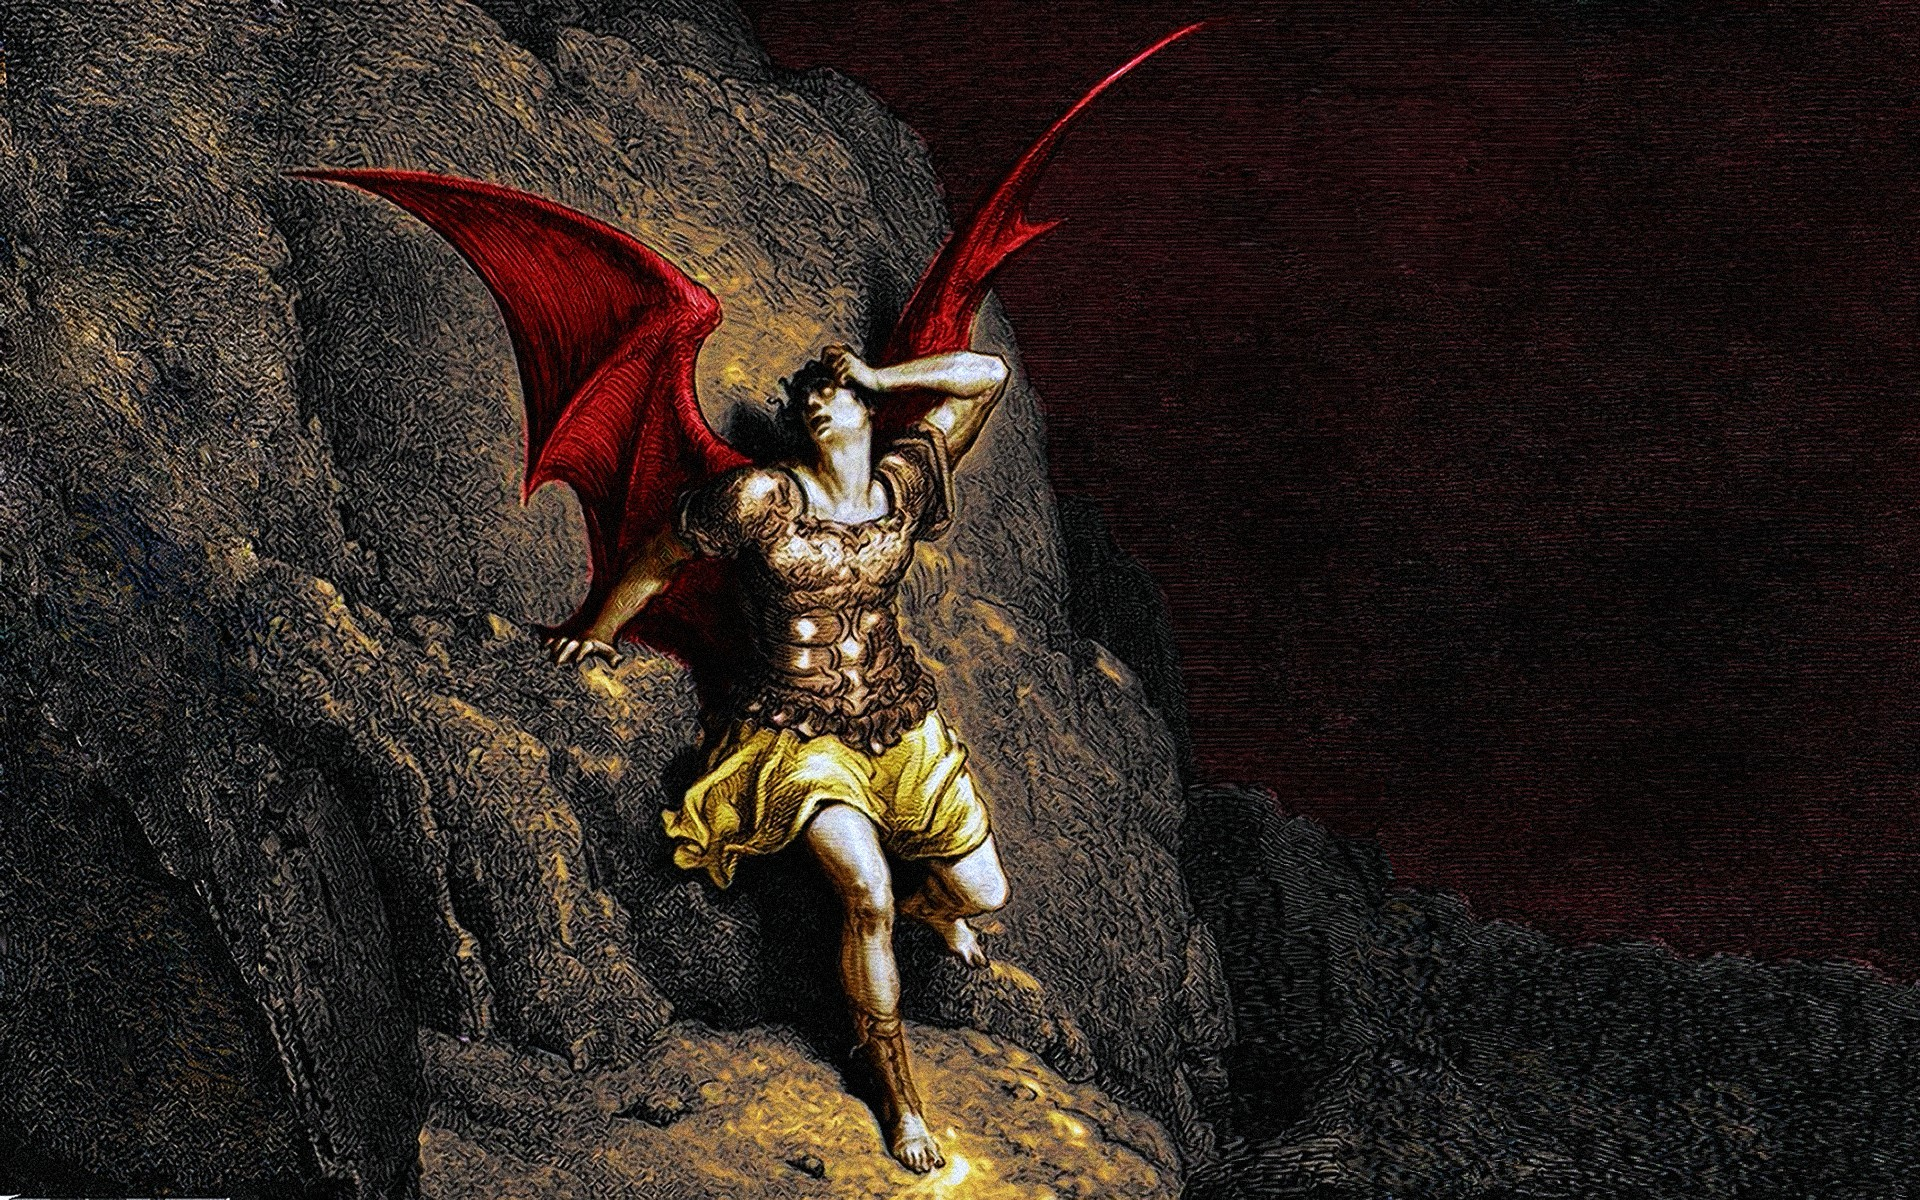 Devil Lucifer Fallen Angel PC, Android, iPhone and iPad. Wallpapers .